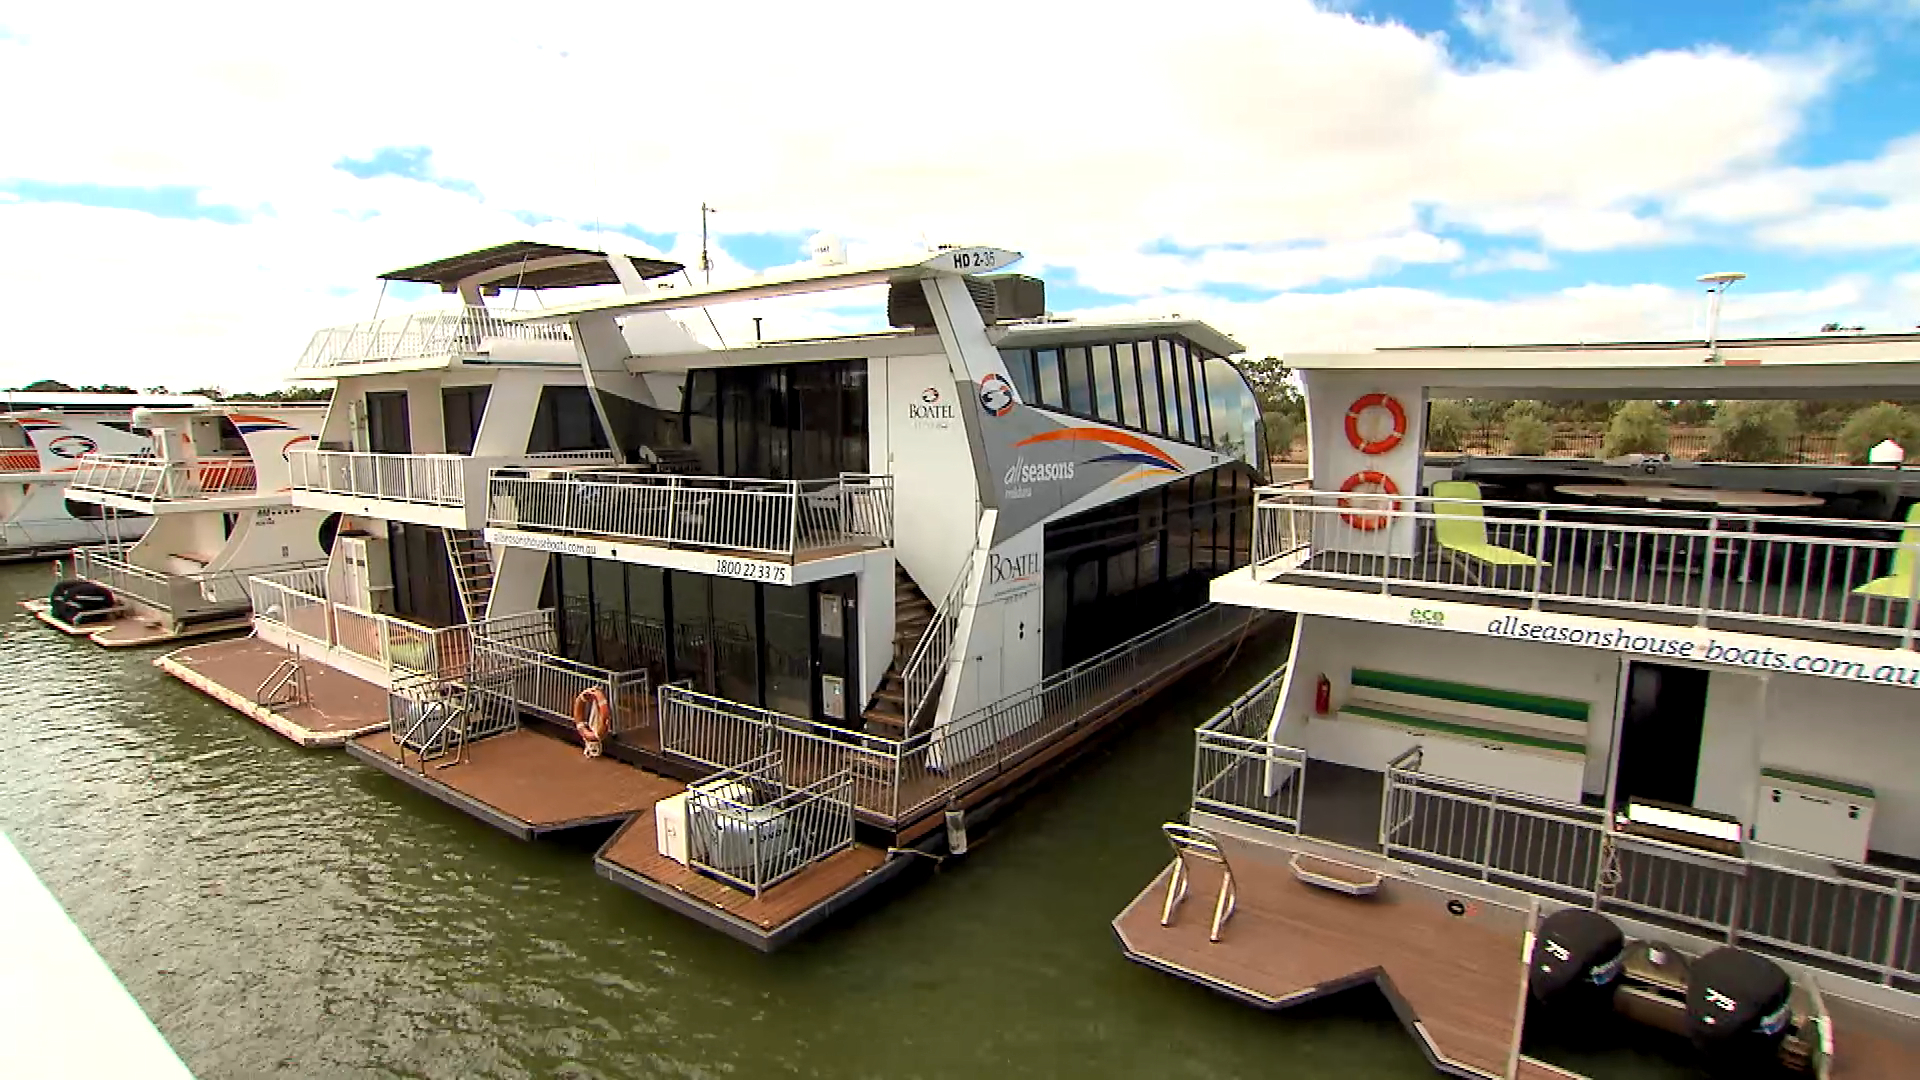 Shane enjoys a houseboat experience on the Murray River